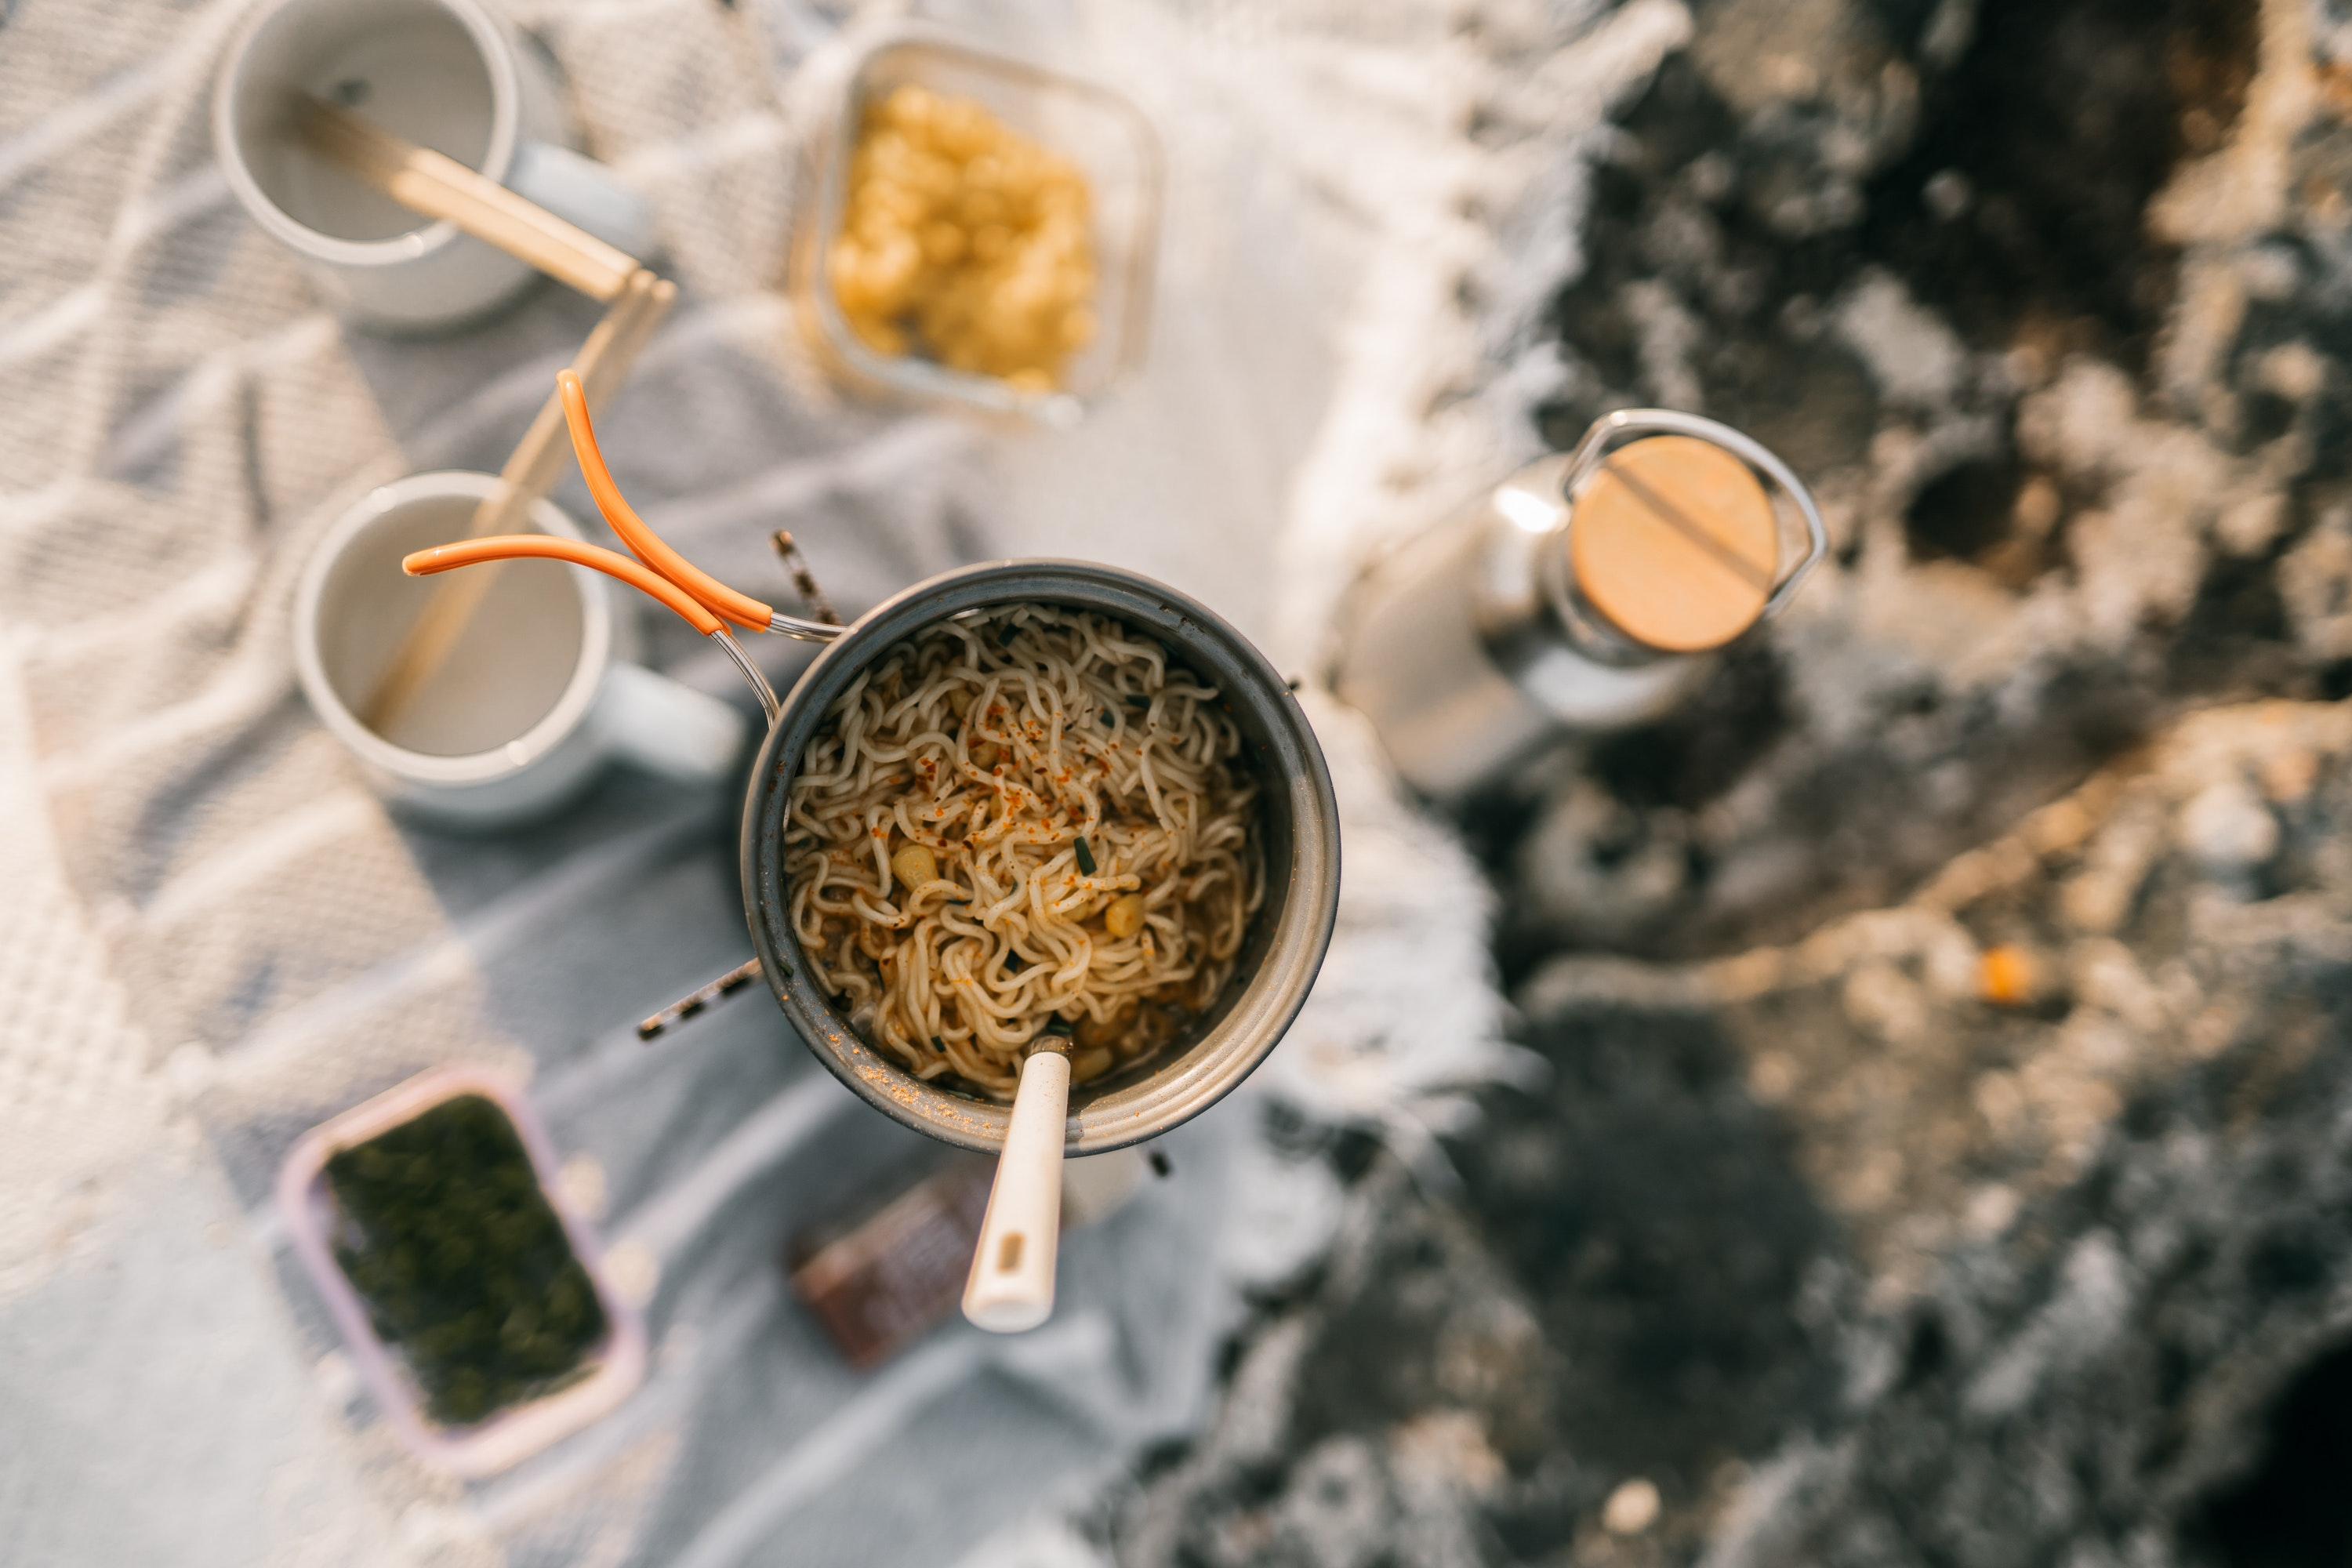 Satisfy Your Ramen Cravings With These Best Instant Noodles